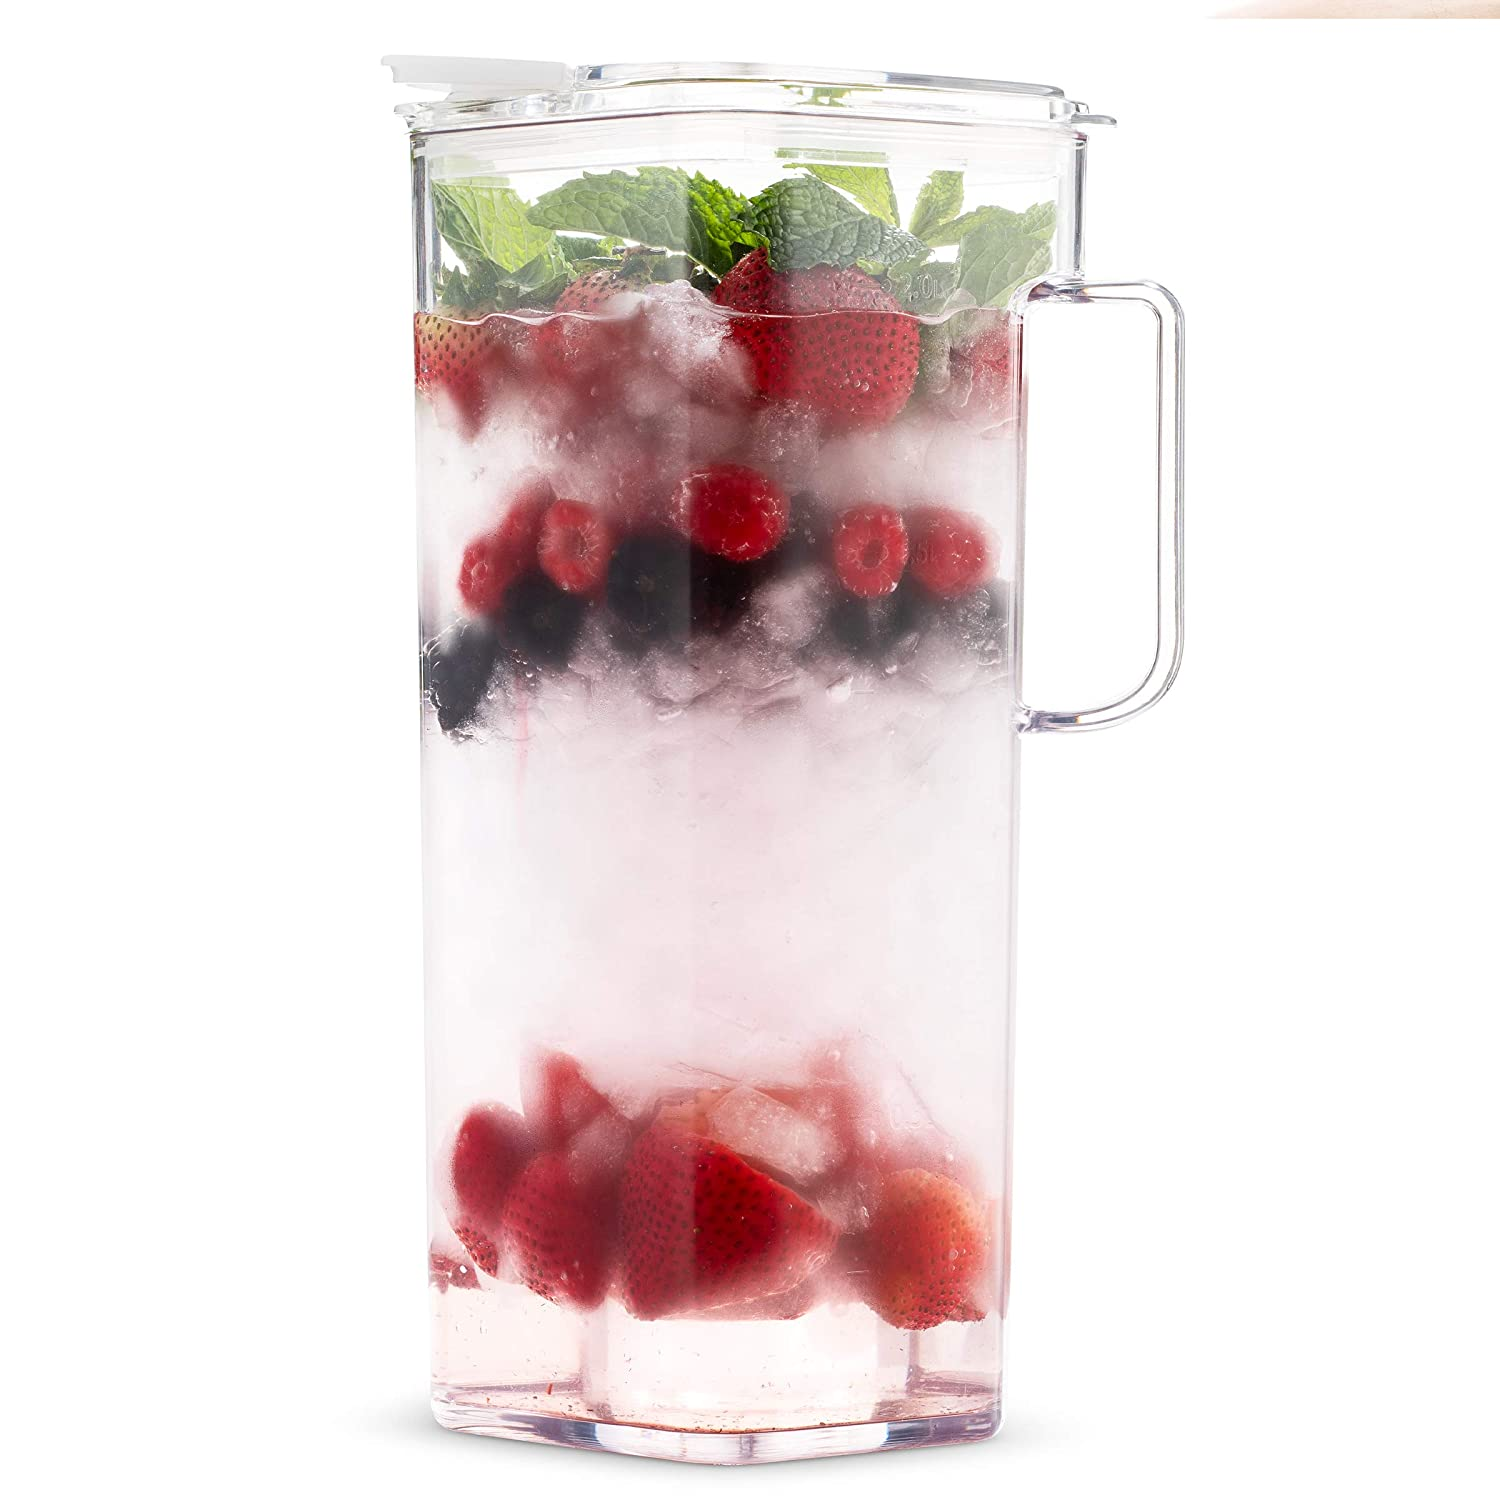 77 Oz Sangria /& Milk Ice Tea Airtight Komax Clear Large Tritan Pitcher with Lid Juice 2.4 Quart Square Shape Water Pitcher BPA Free Full Capacity Jug Lemonade | Great Carafe for Water